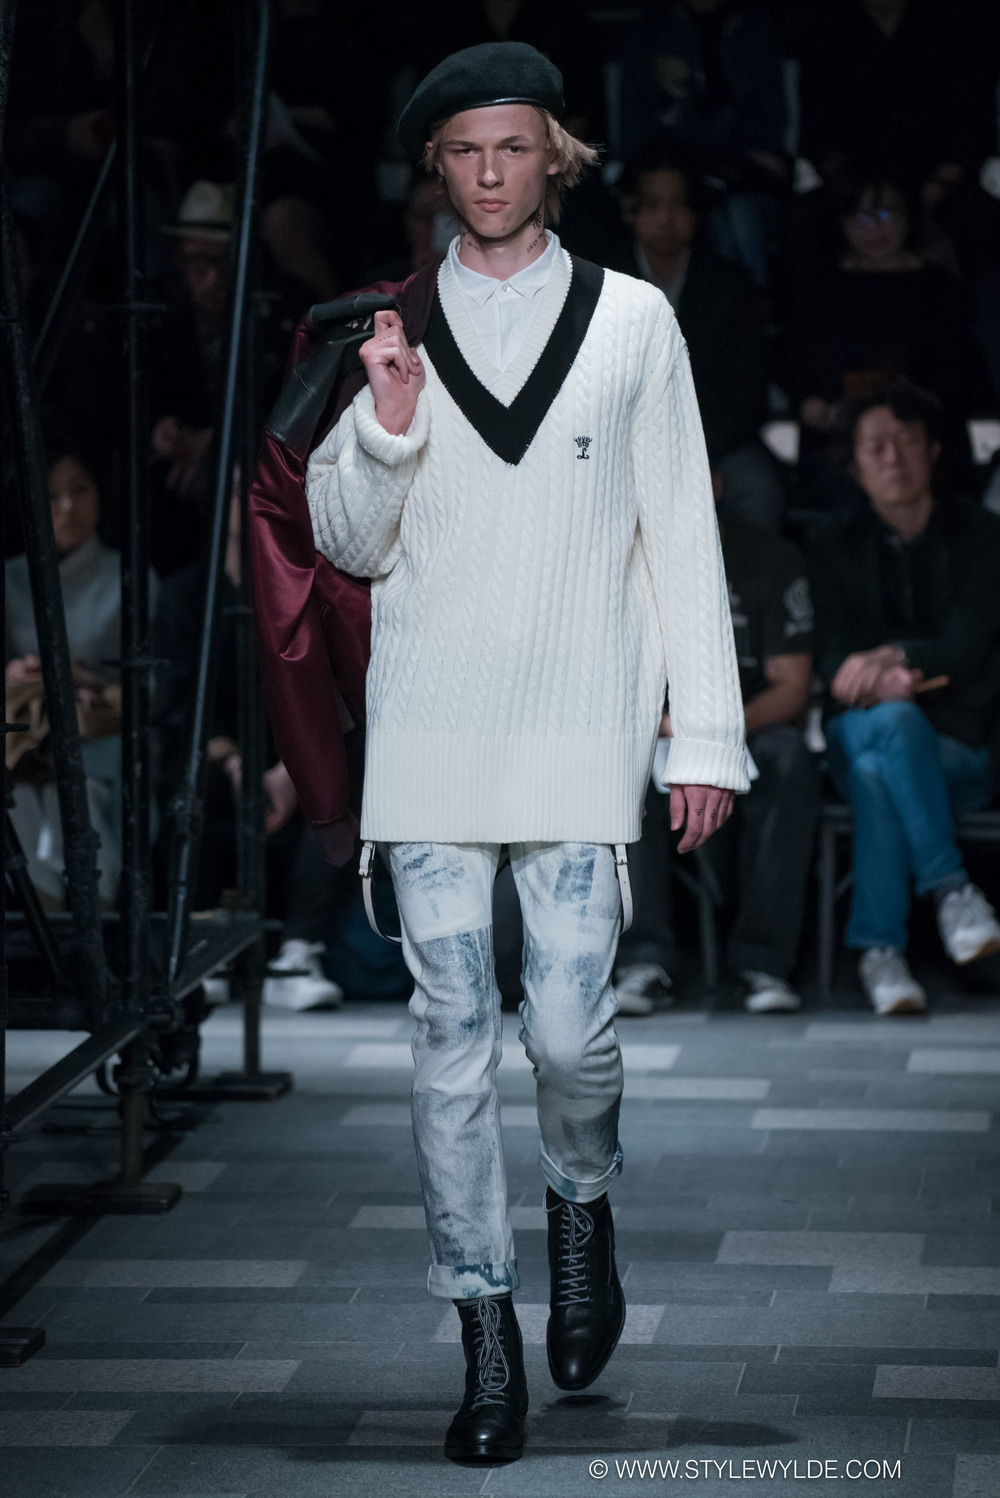 stylewylde_5351_pour_les_hommes_fw_2016-27.jpg